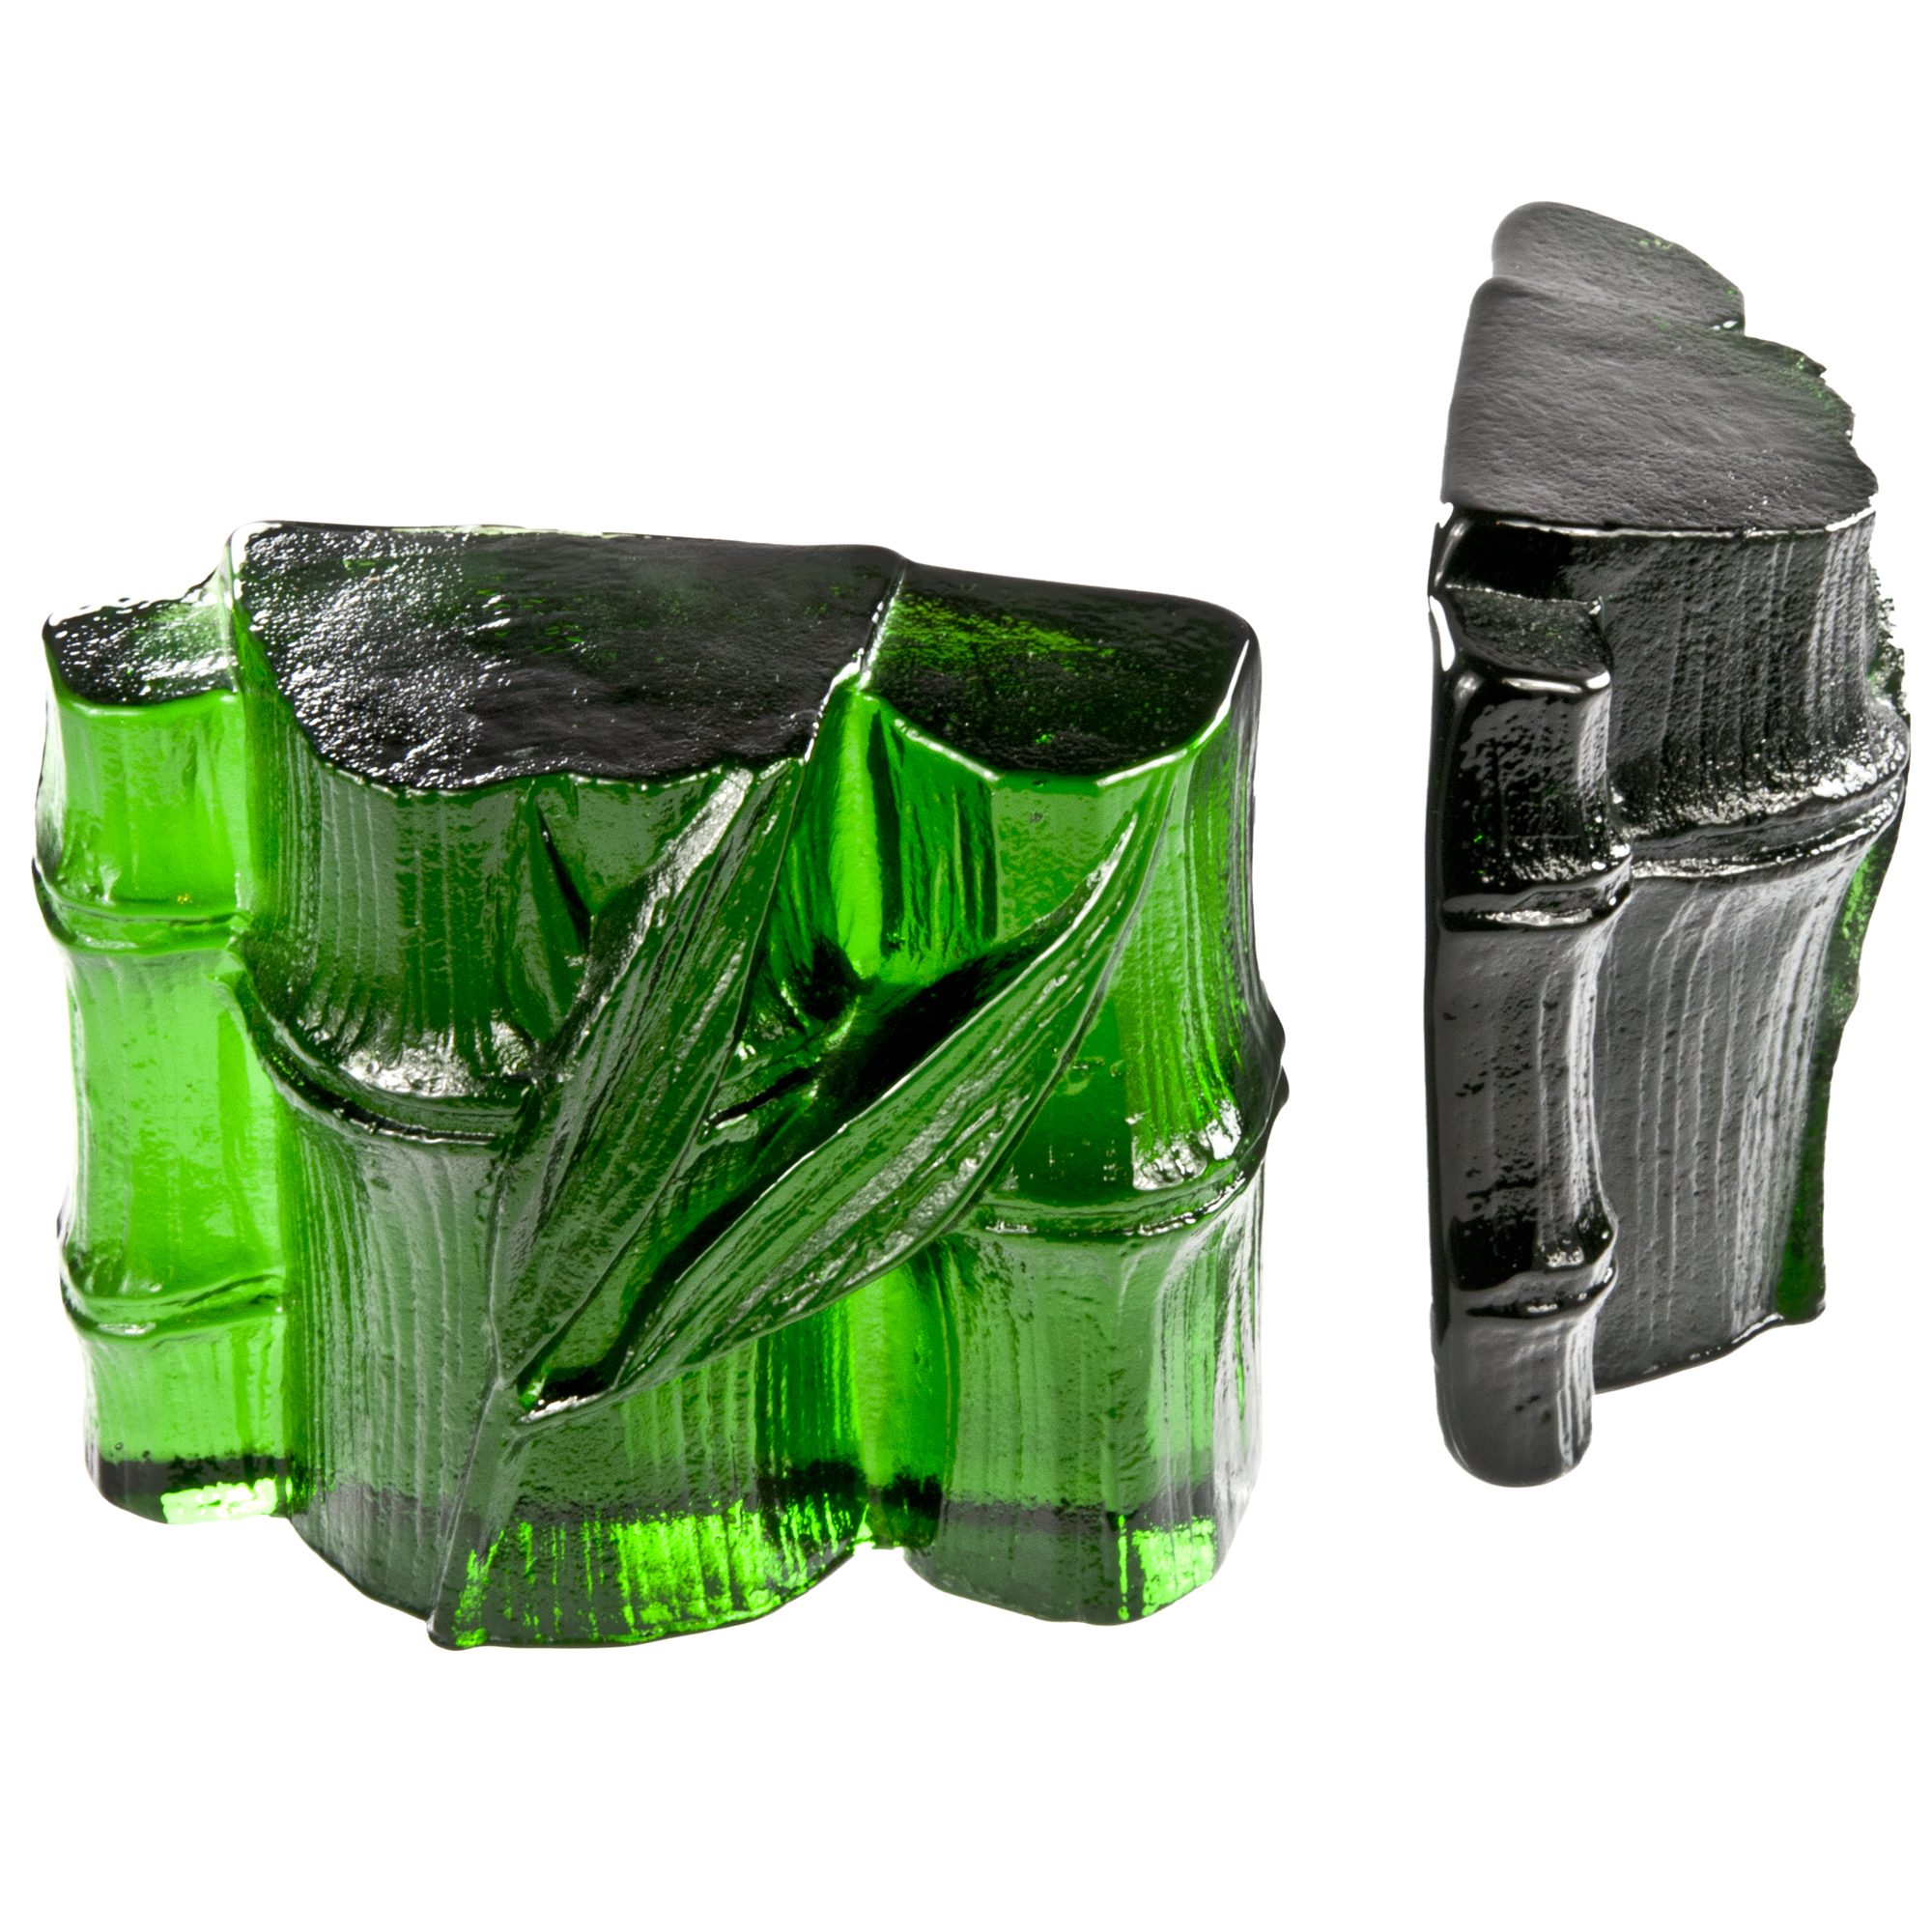 Blenko Green Glass Bamboo Bookends | Chairish